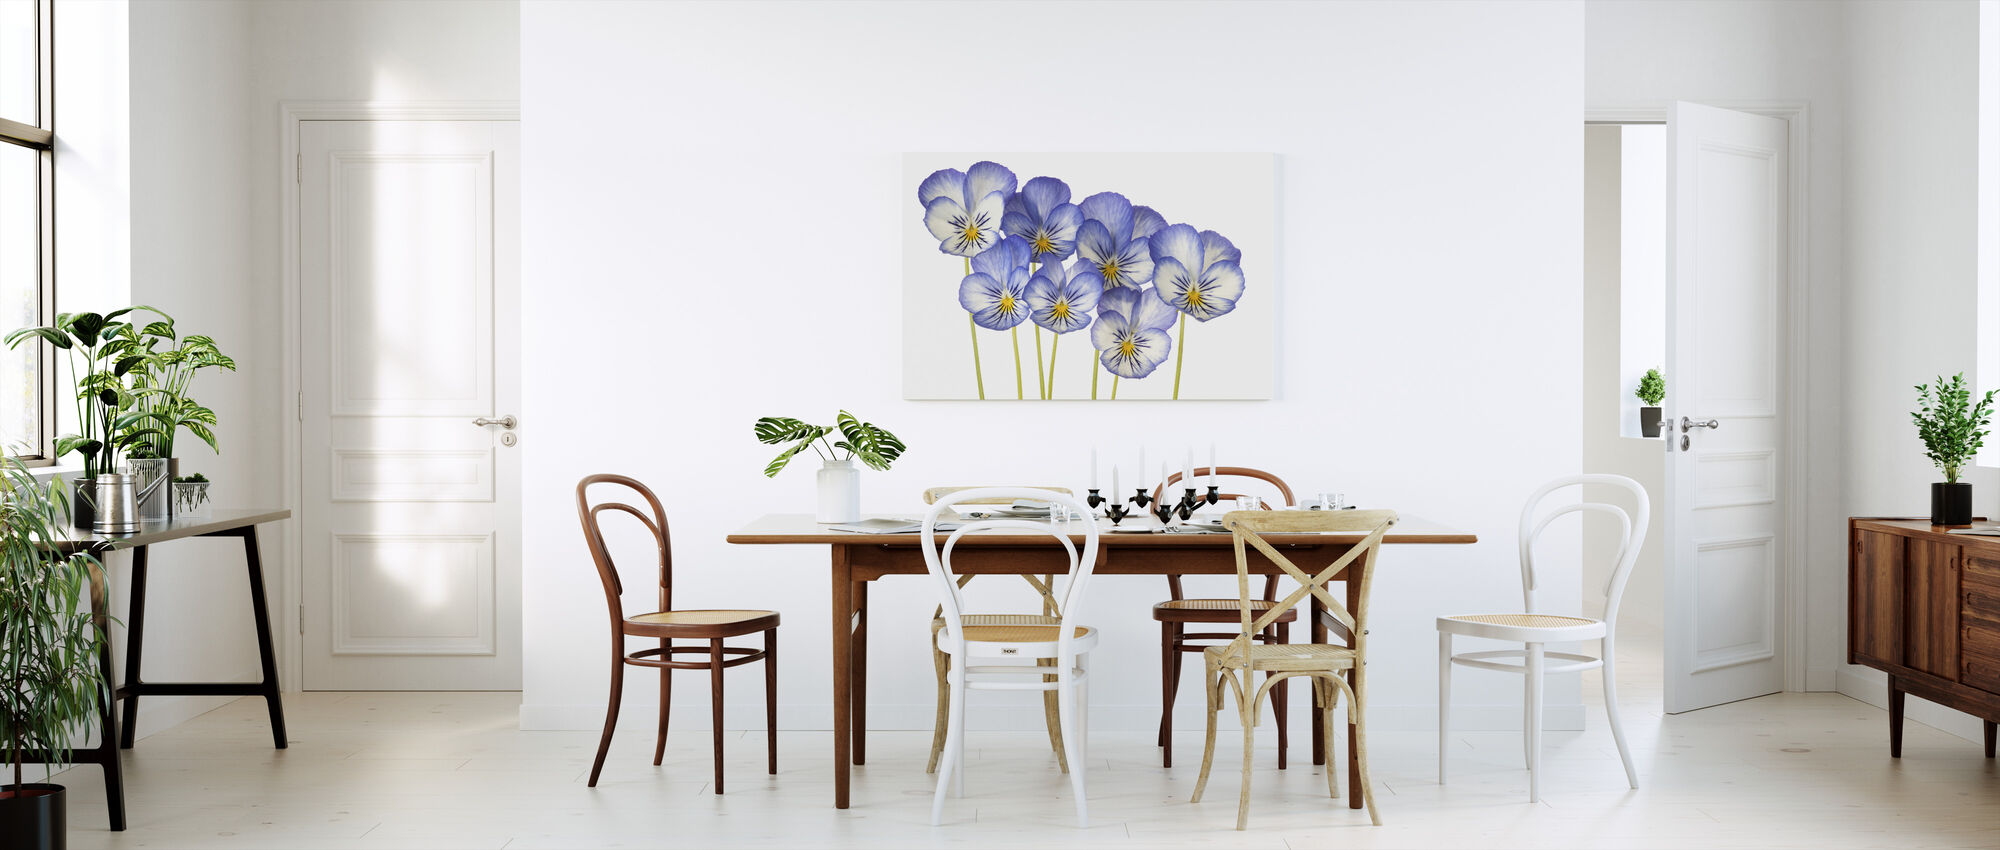 Blue Pansies - Canvas print - Kitchen